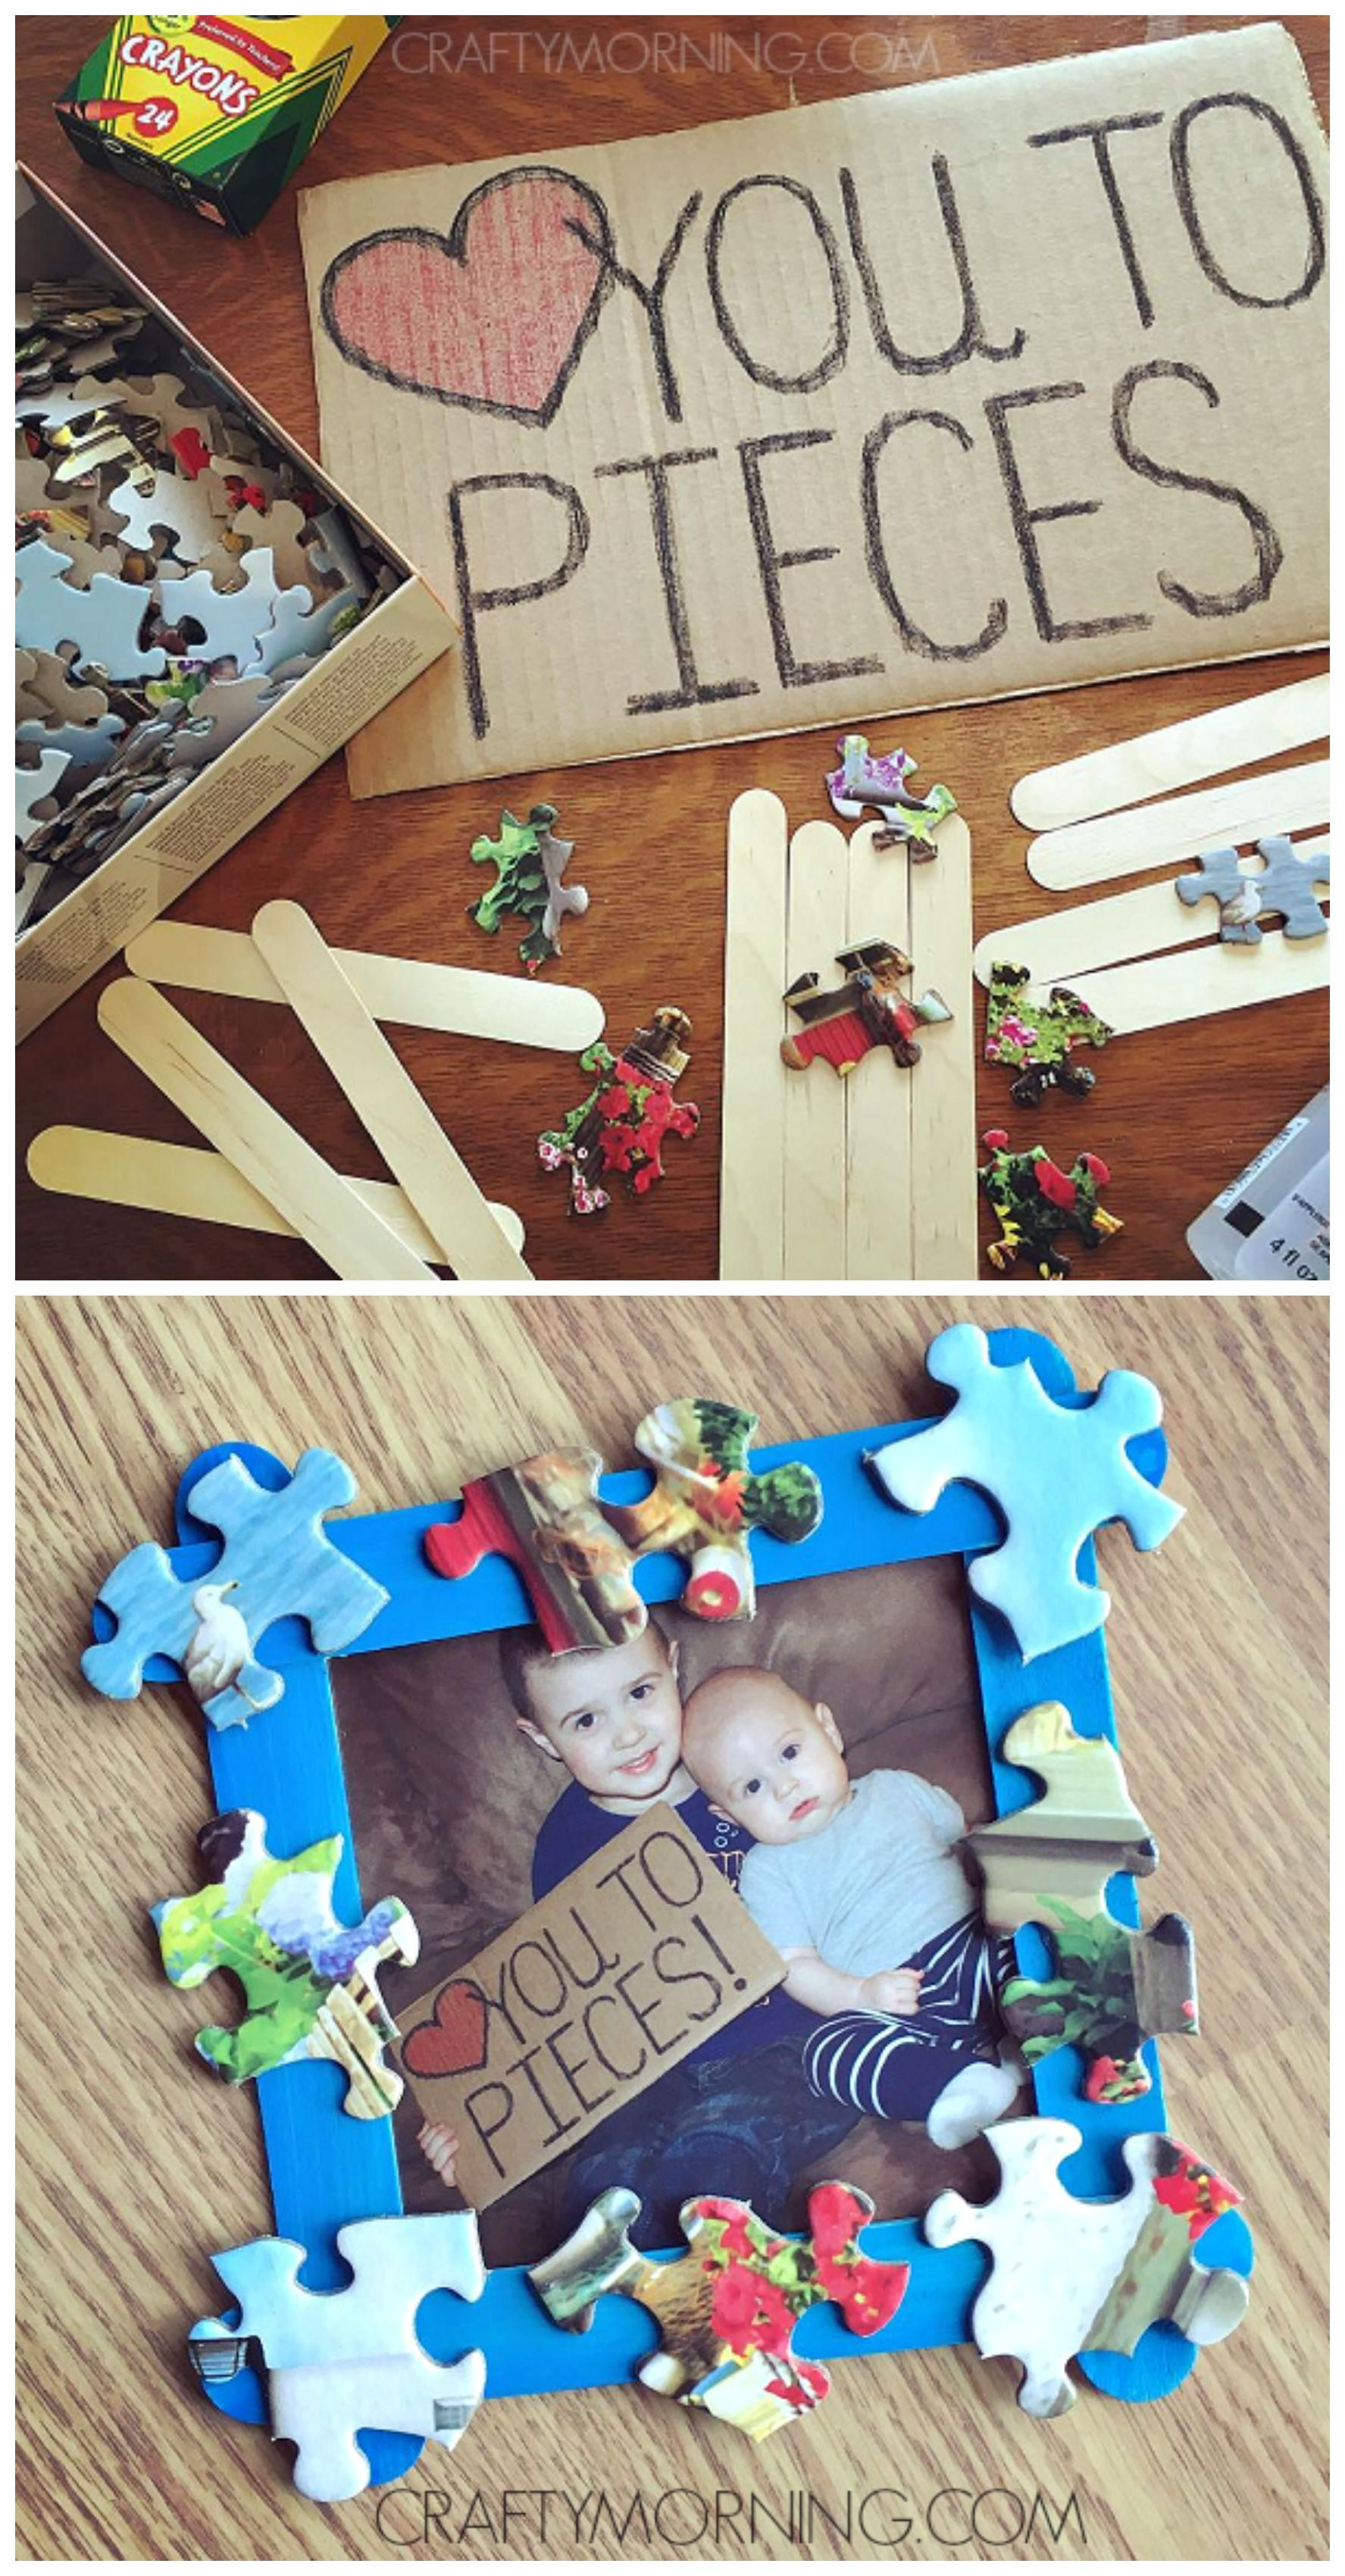 Arts And Crafts Gift Ideas For Kids Part - 40: Love You To Pieces Fatheru0027s Day Craft/gift Idea From The Kids! Make A